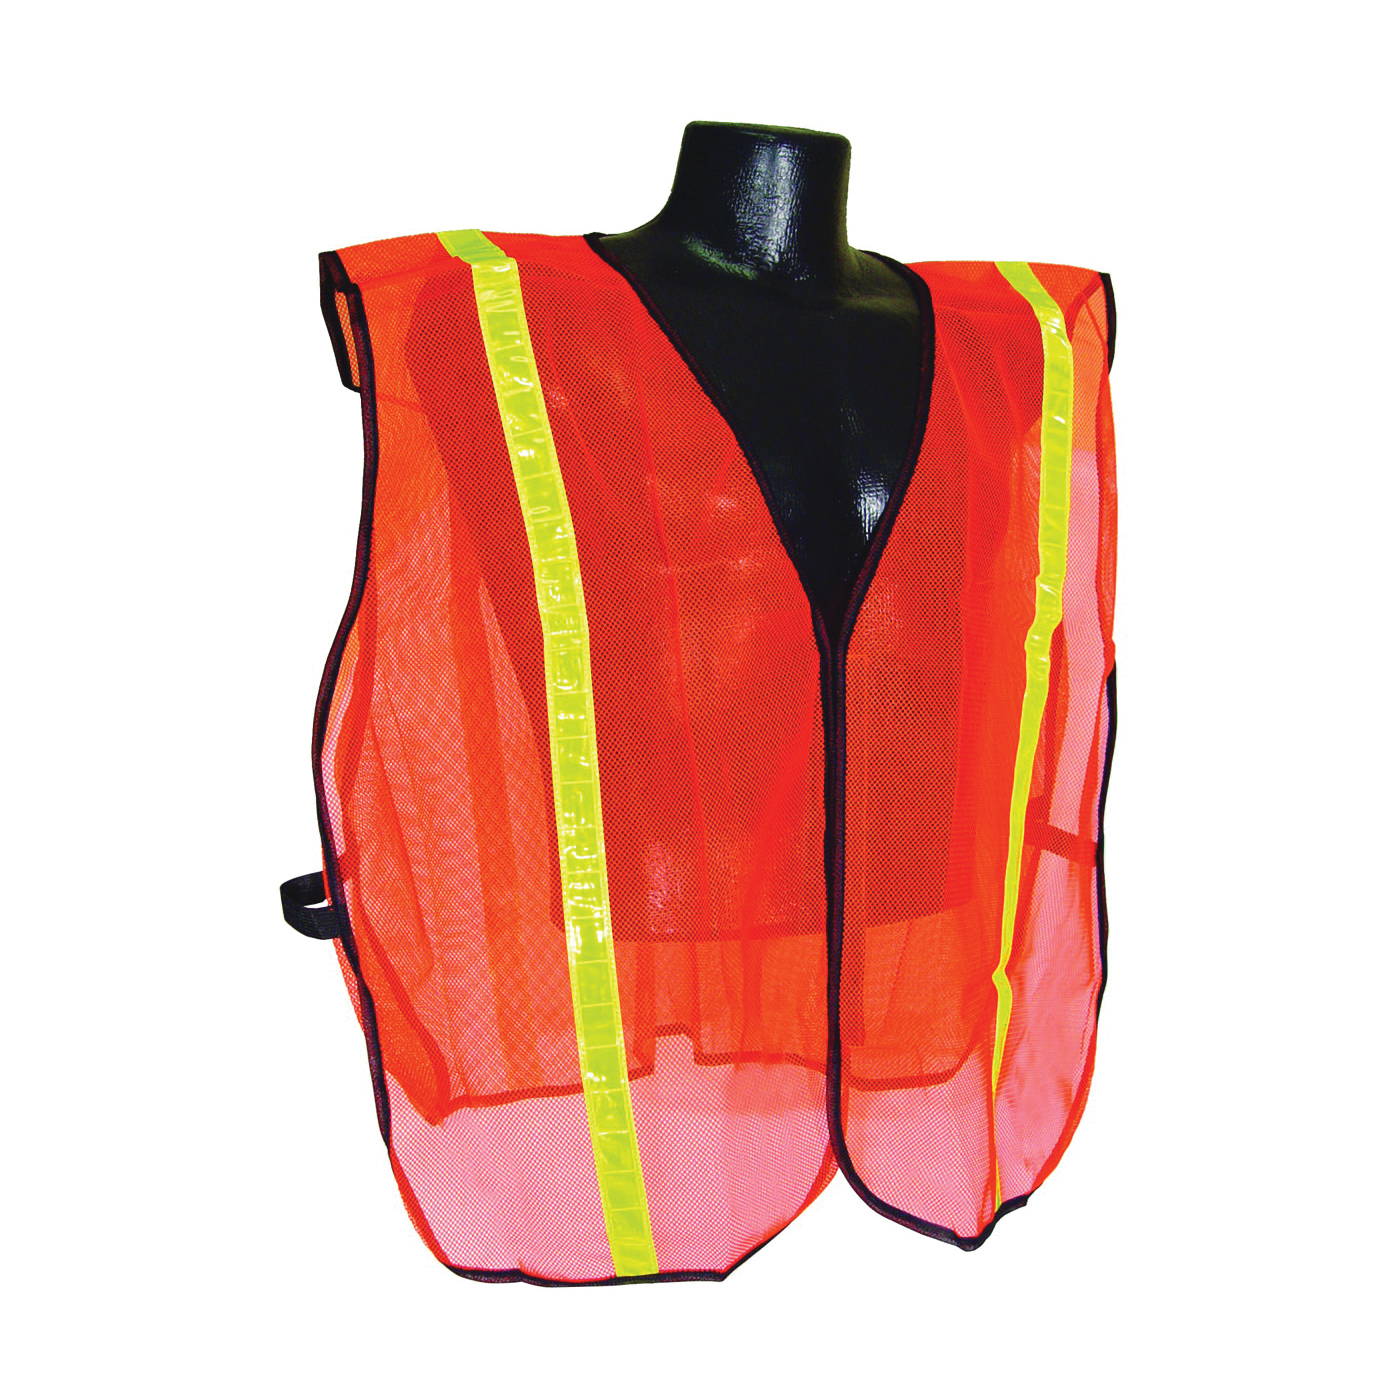 Picture of RADWEAR SVO1-S/XL Safety Vest, S/XL, Polyester, Green/Orange/Silver, Hook-and-Loop Closure